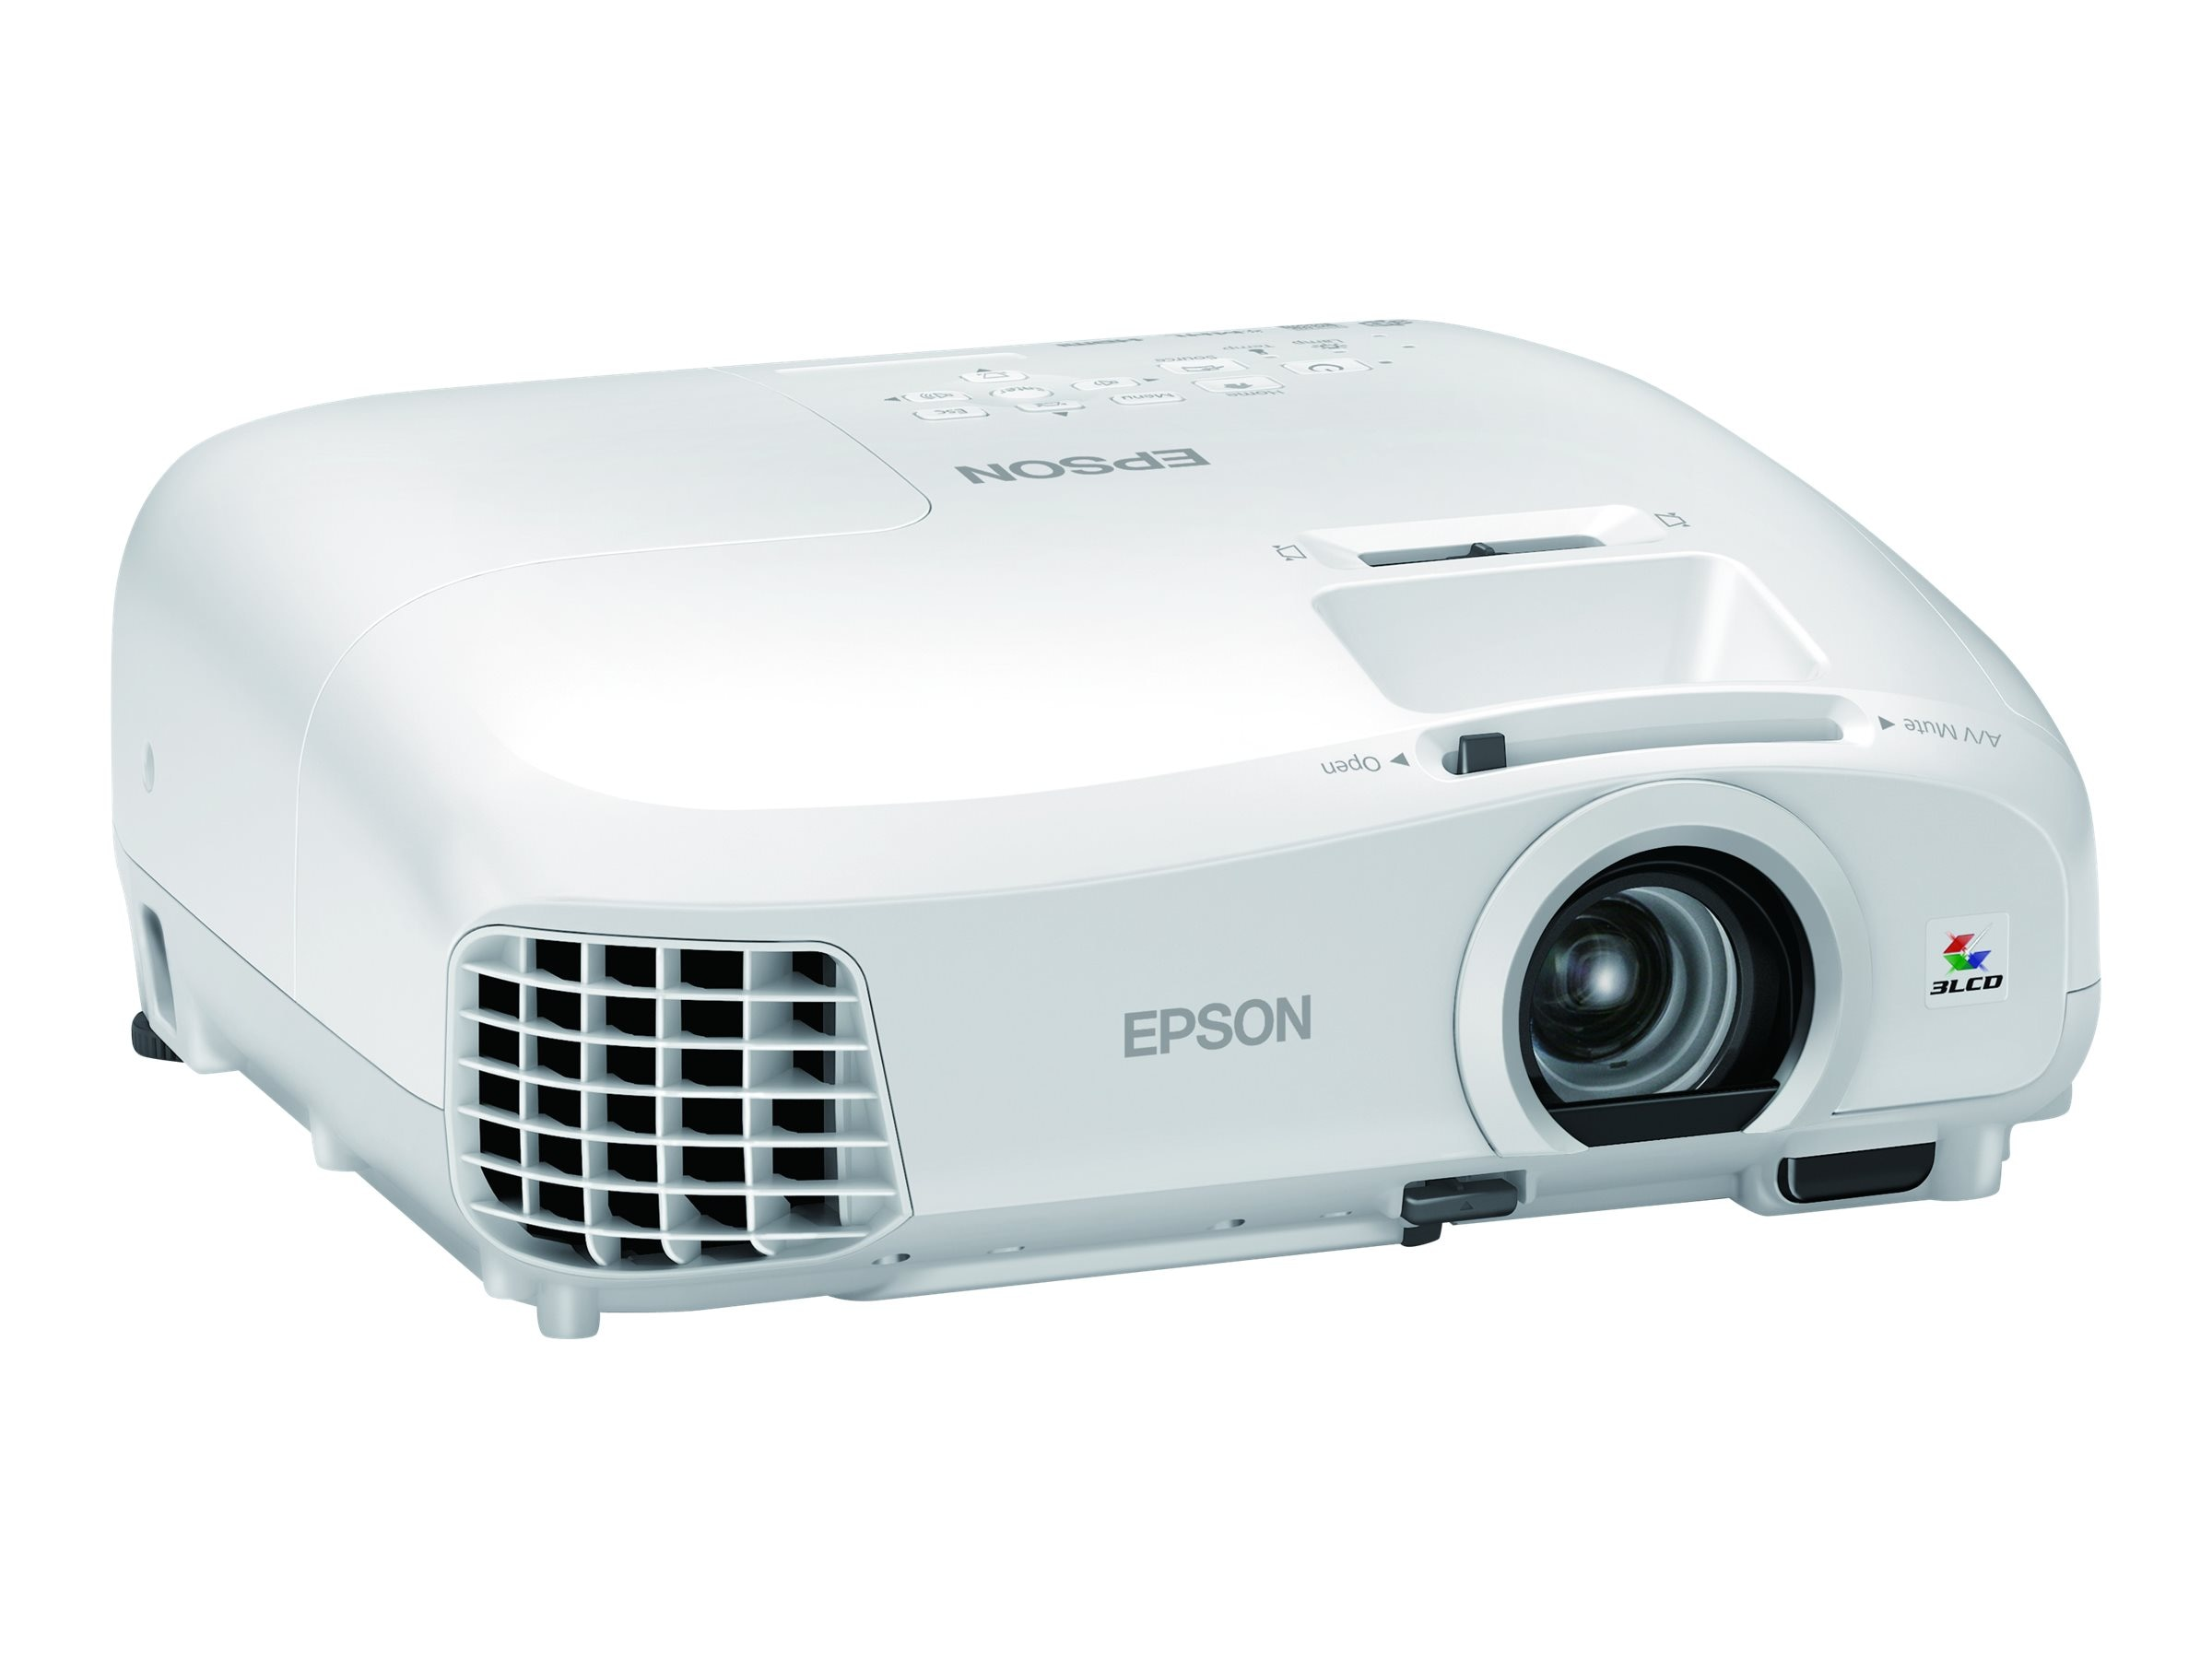 Epson PowerLite Home Cinema 2040 3D 1080p 3LCD Projector, 2200 Lumens, White, V11H707020